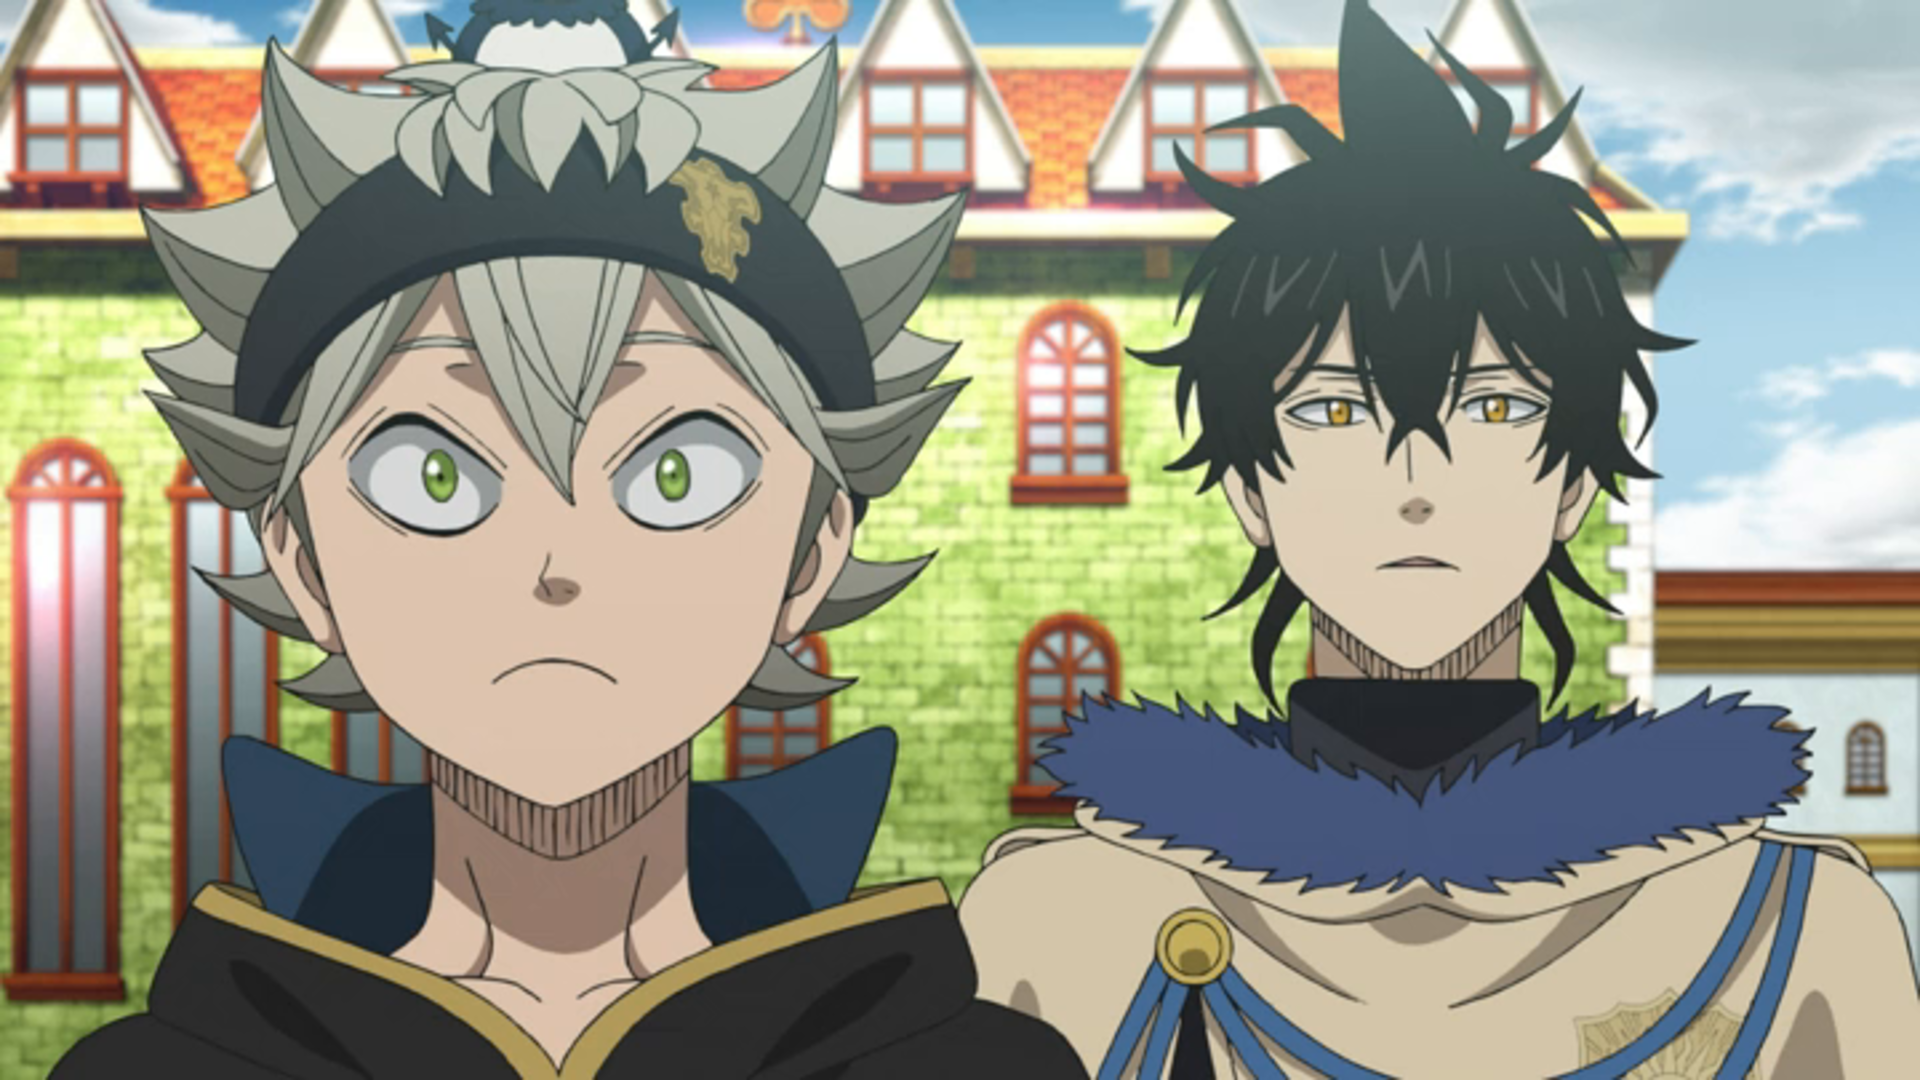 Watch Black Clover Season 2 Pt 4 Simuldub Prime Video The author(me) of this character has zero knowledge of coding, but was trying his best to create his favorite character that probably would never be made. black clover season 2 pt 4 simuldub